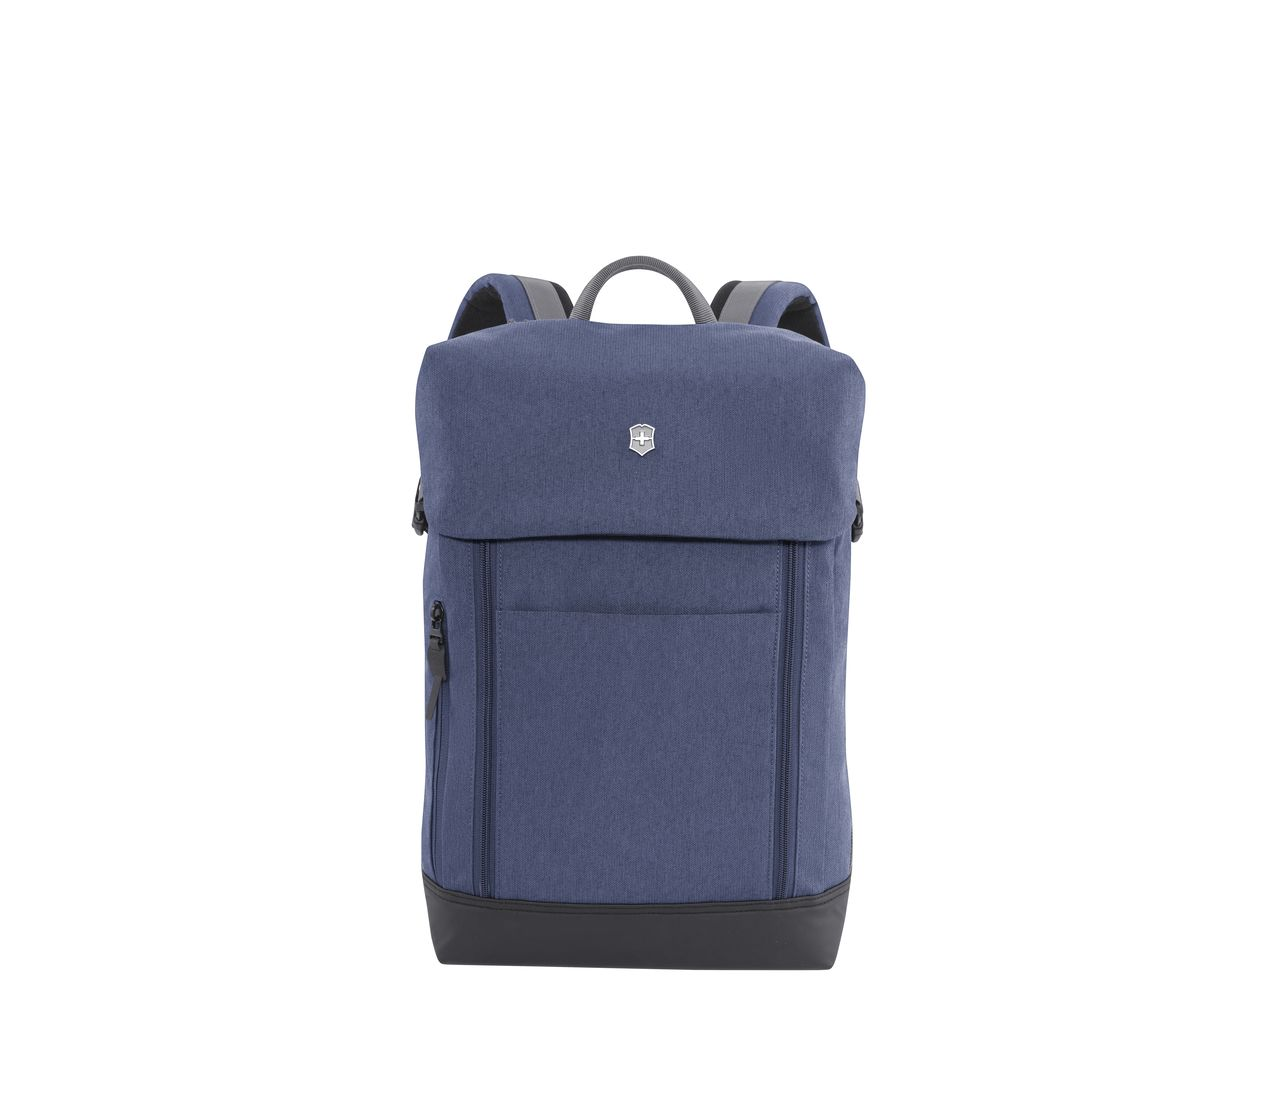 Deluxe Flapover Laptop Backpack-605312